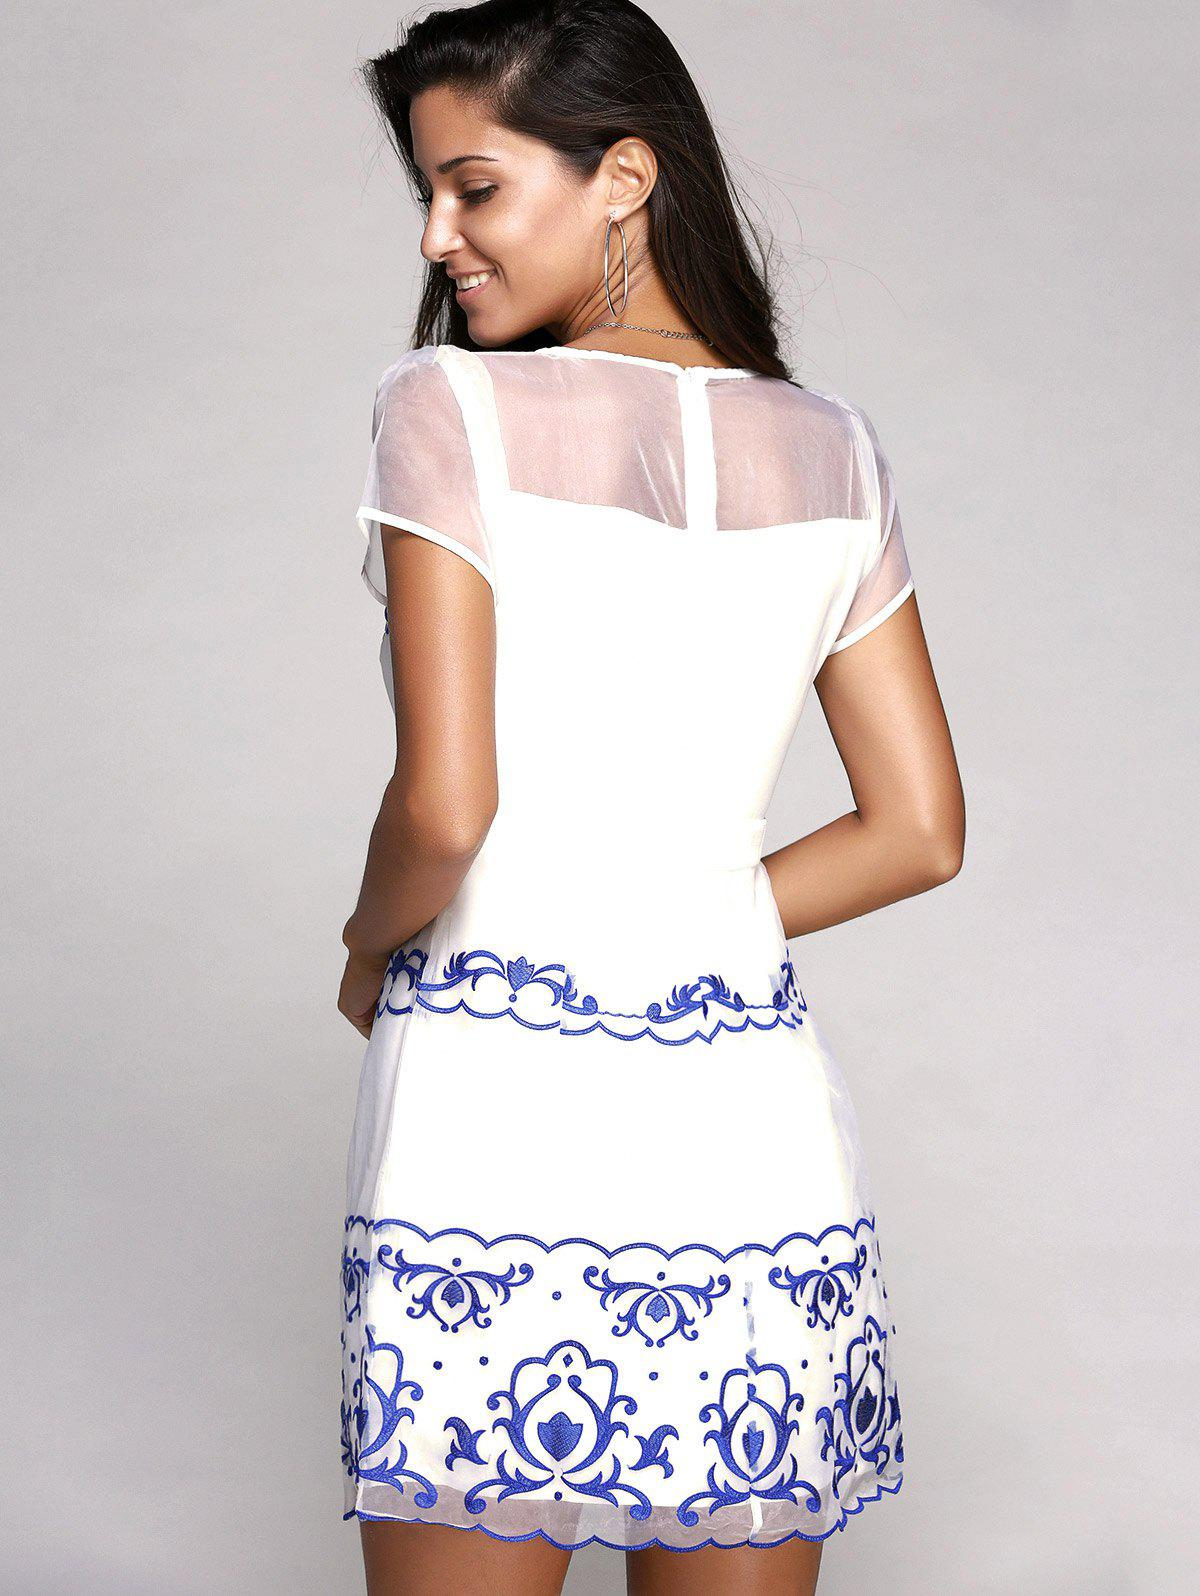 Charming Short Sleeve Round Neck Embroidery Voile Spliced Women's Dress - WHITE XL